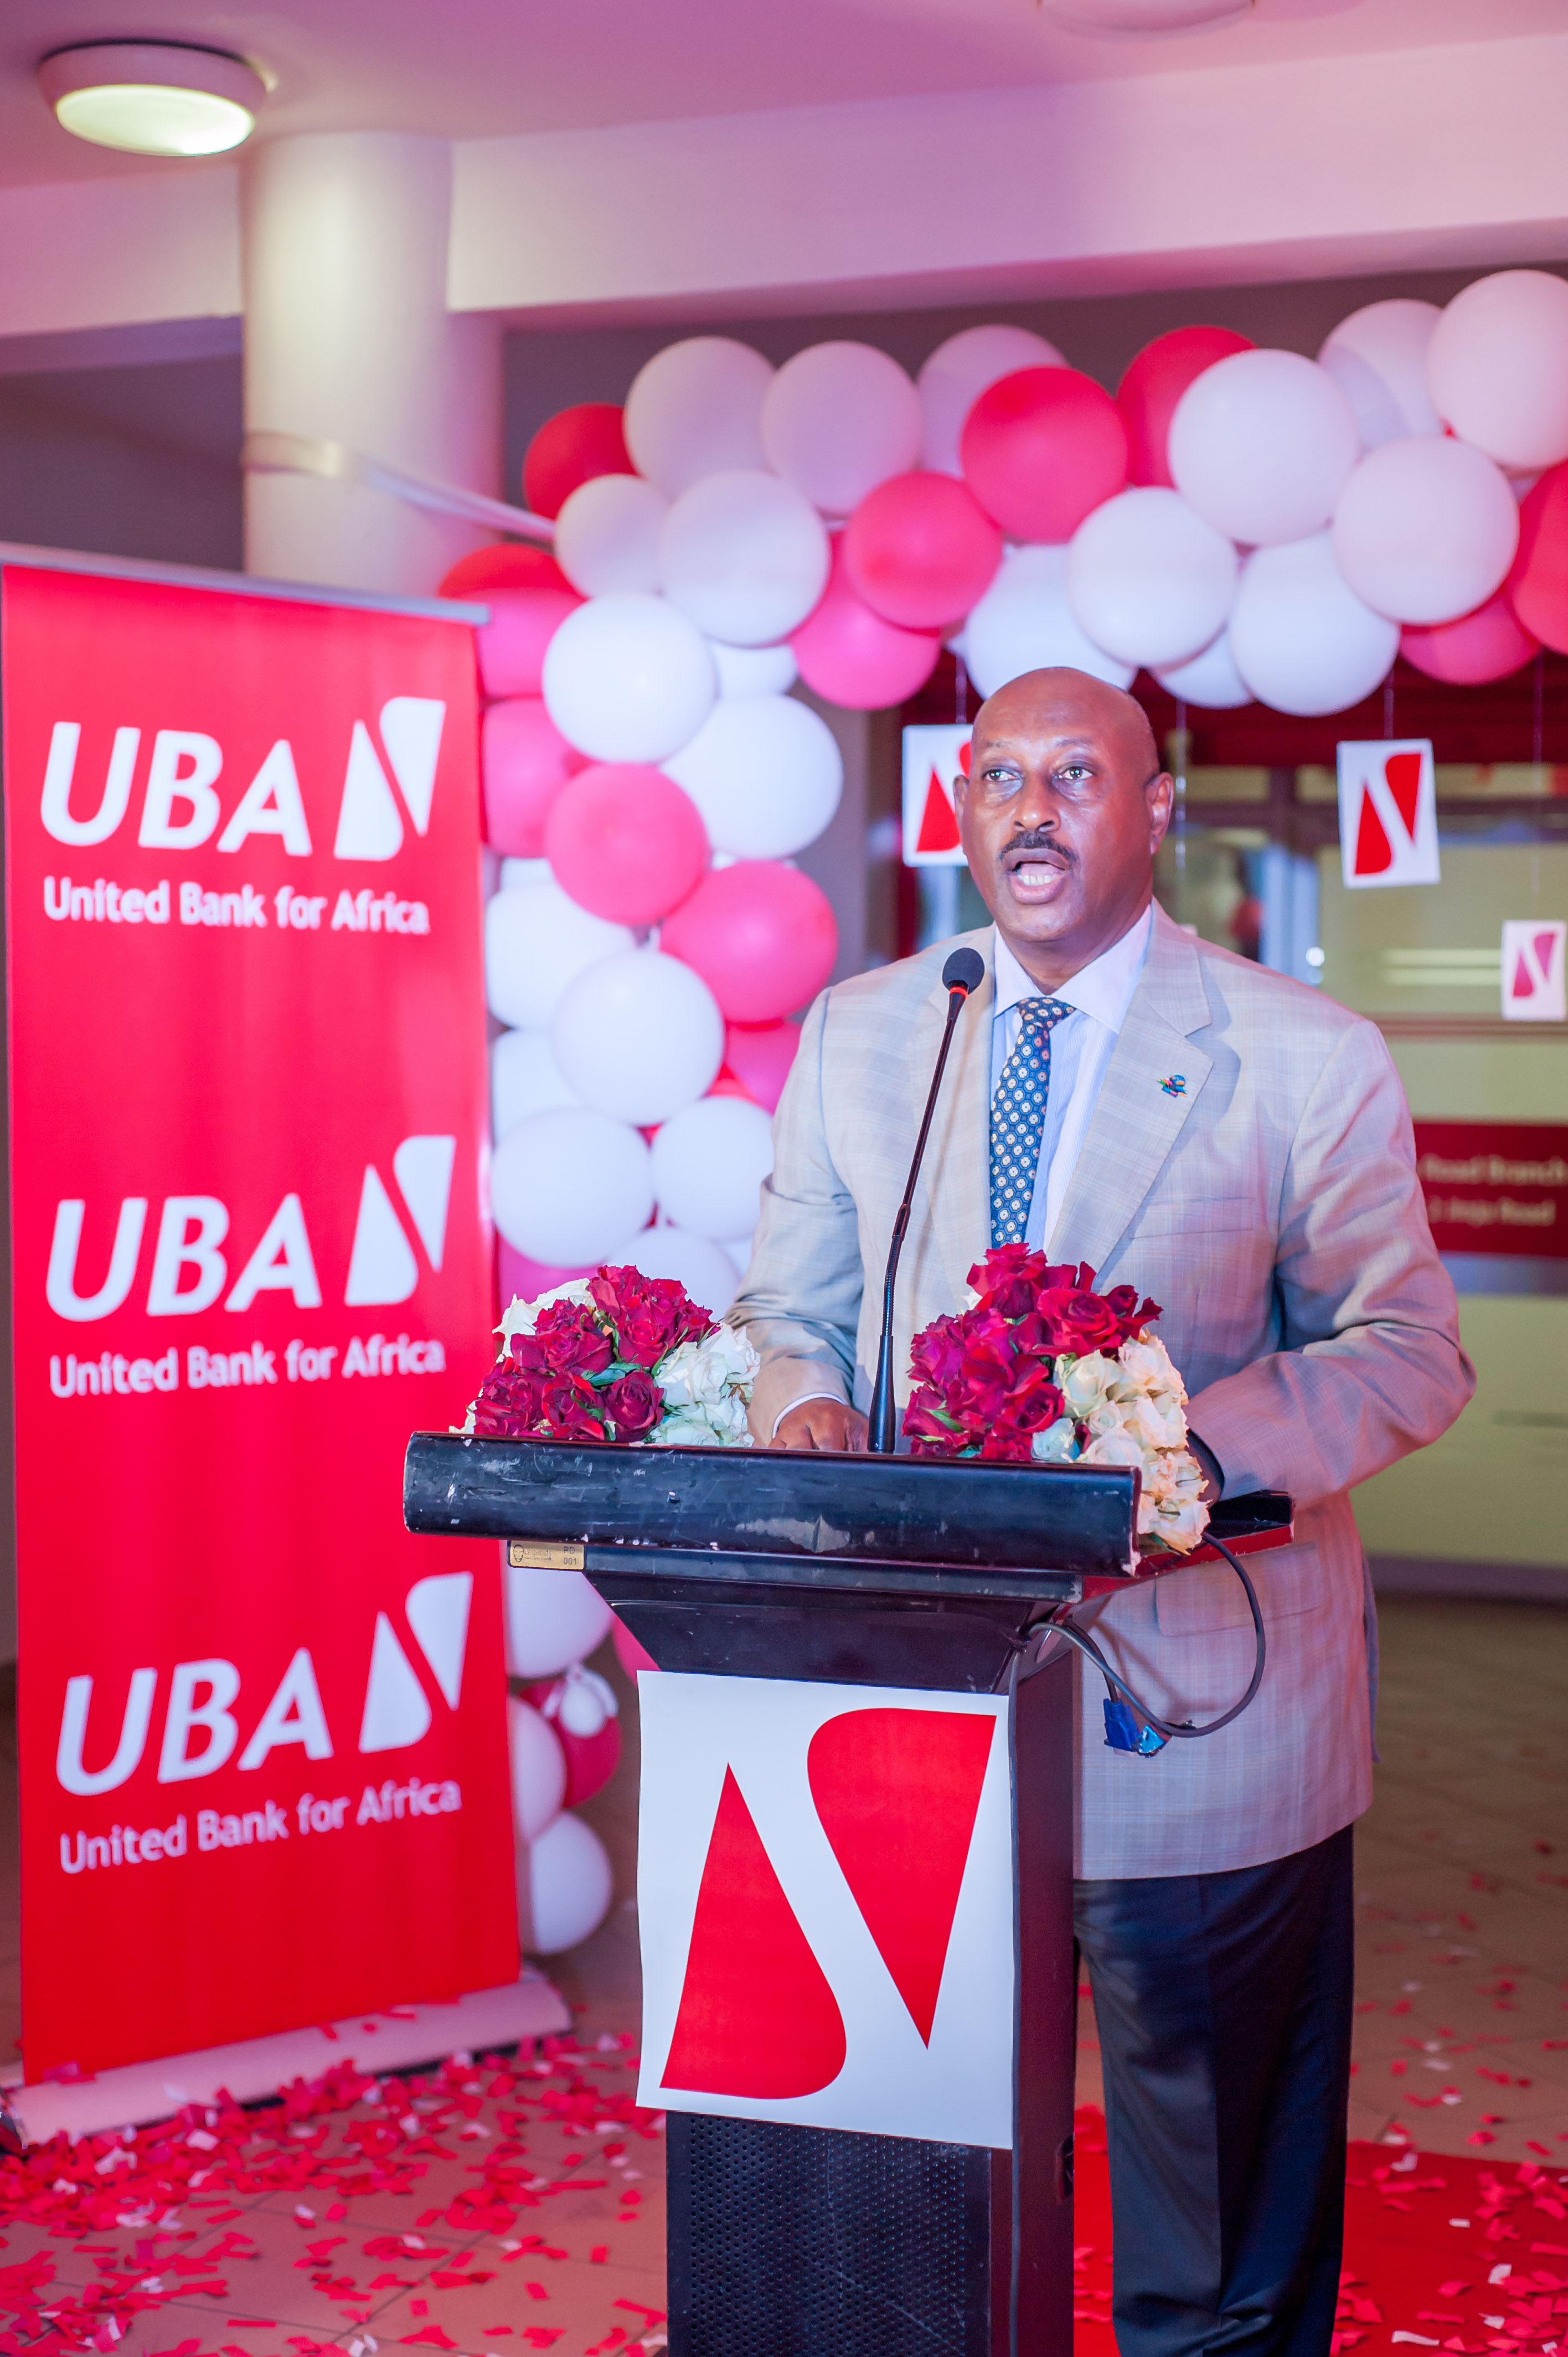 Highlights From The Uba Launch